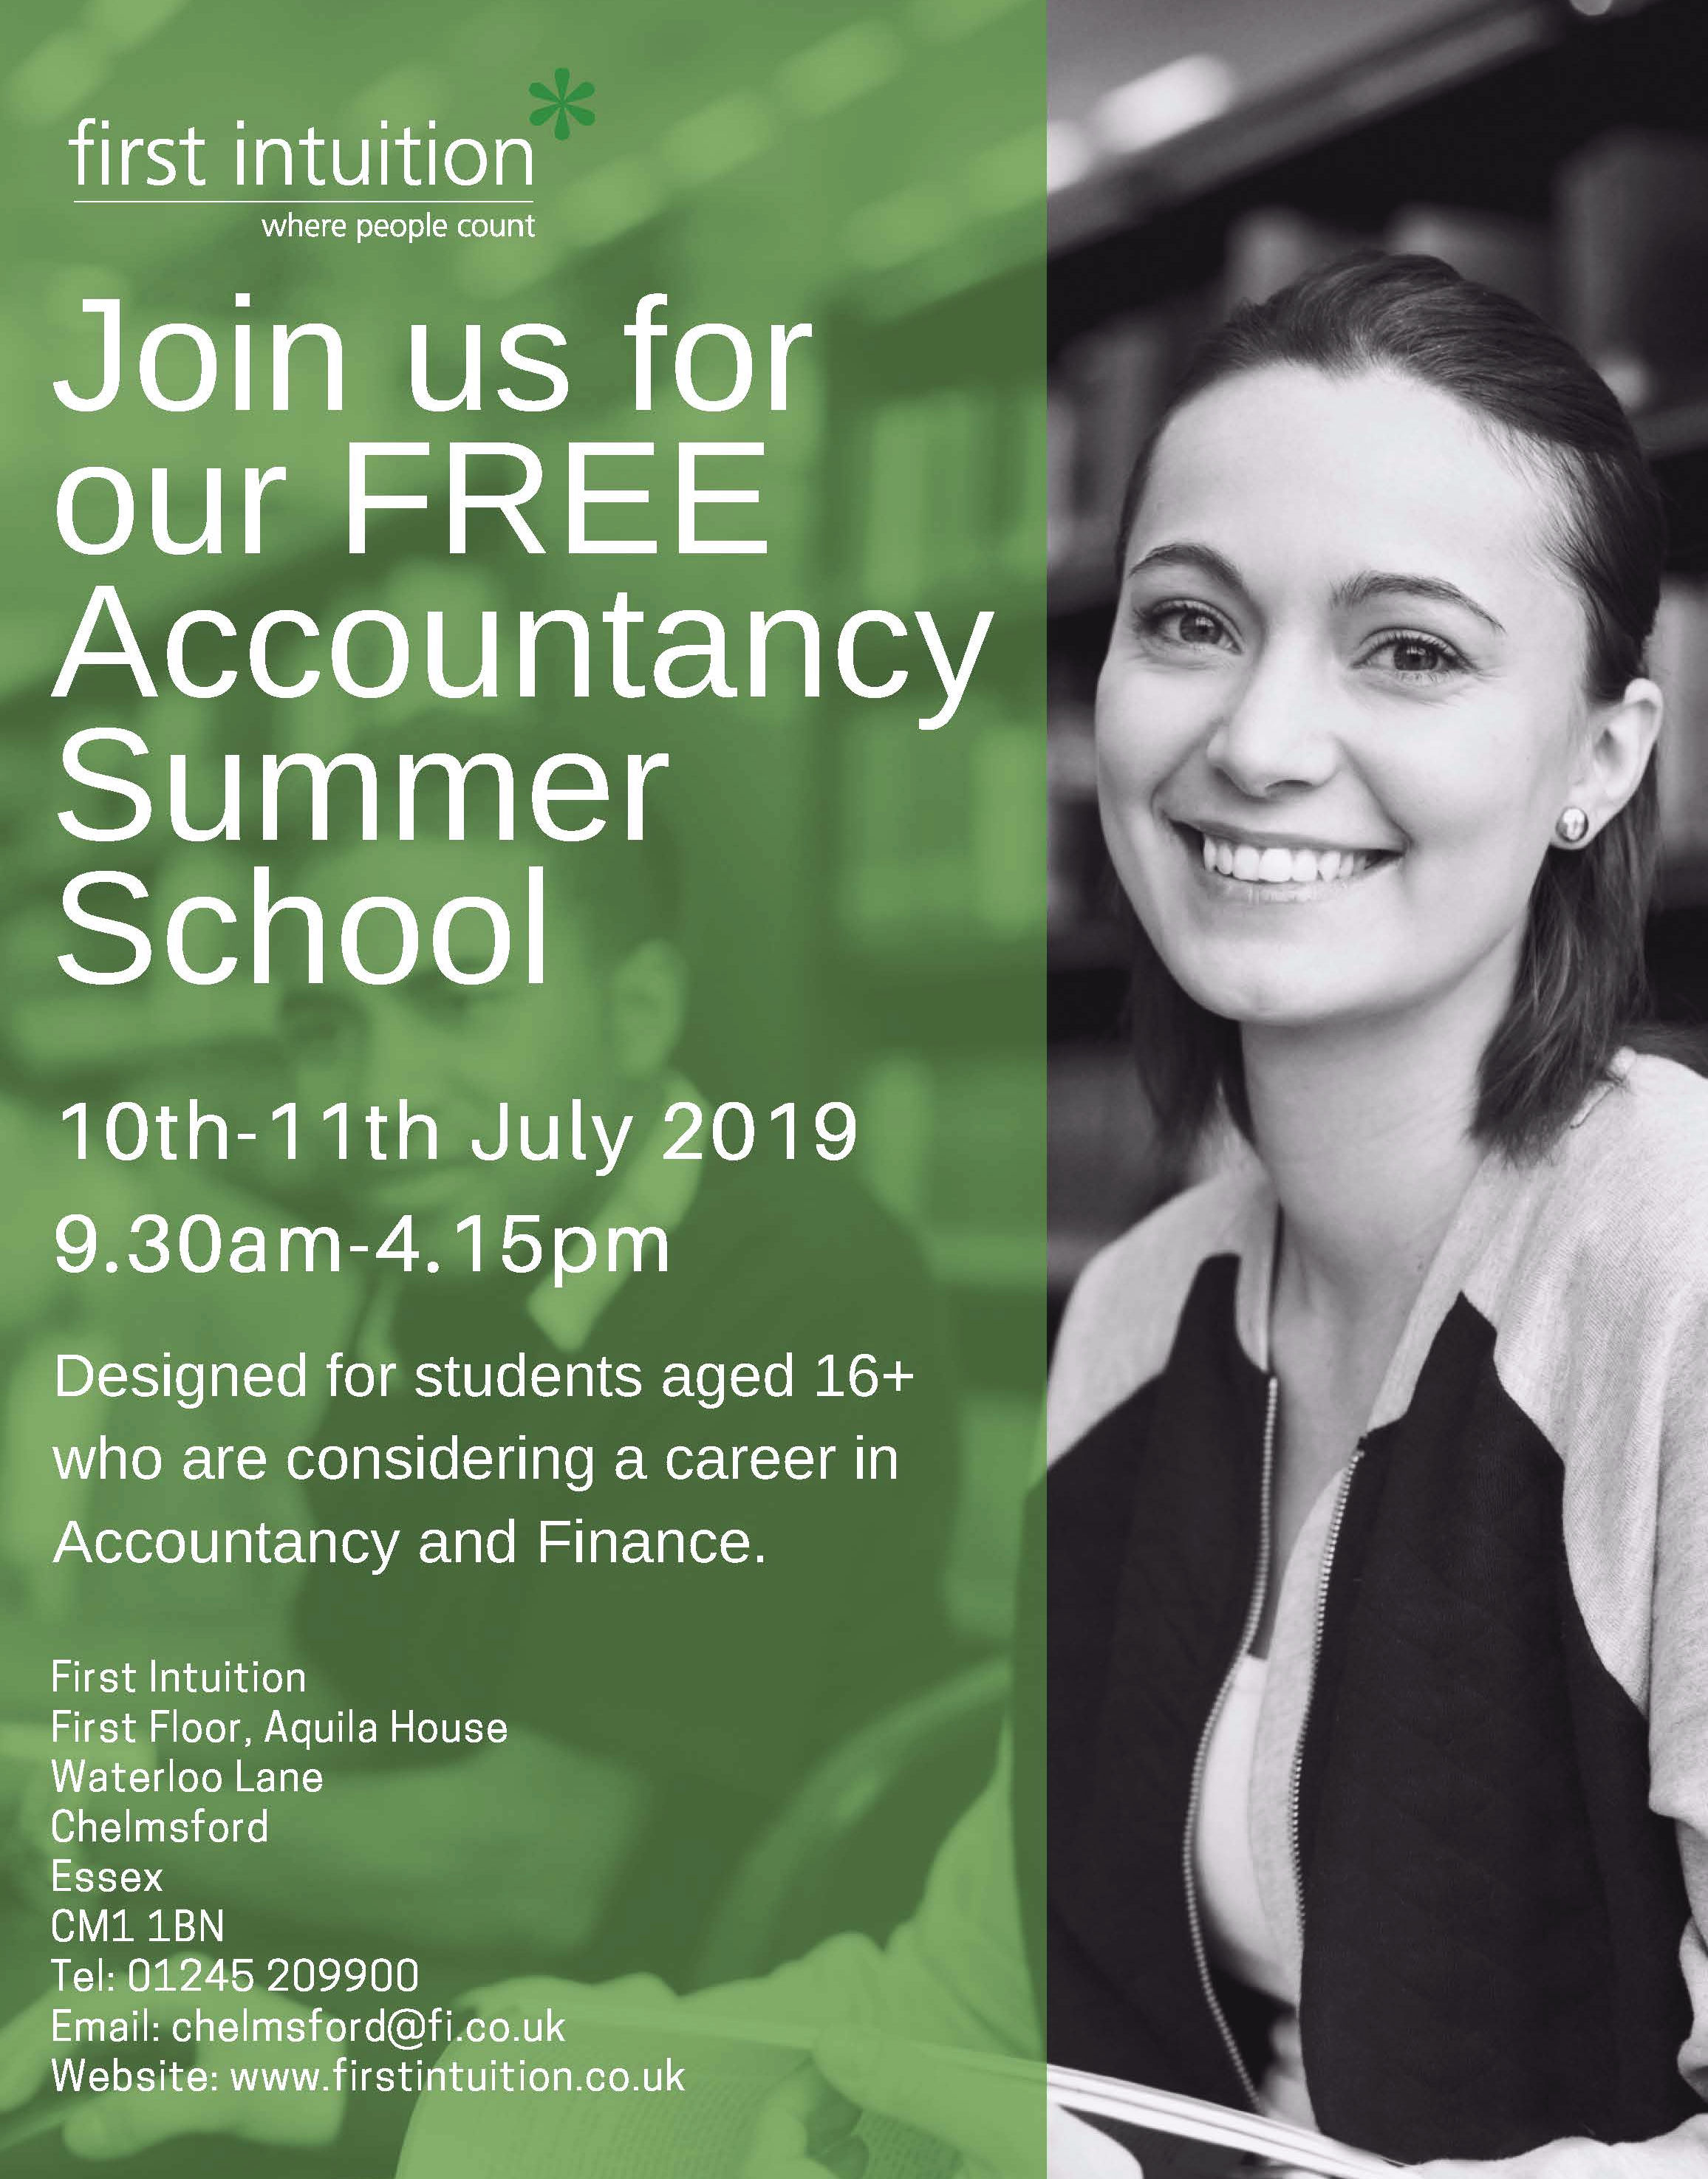 Accountancy Summer School